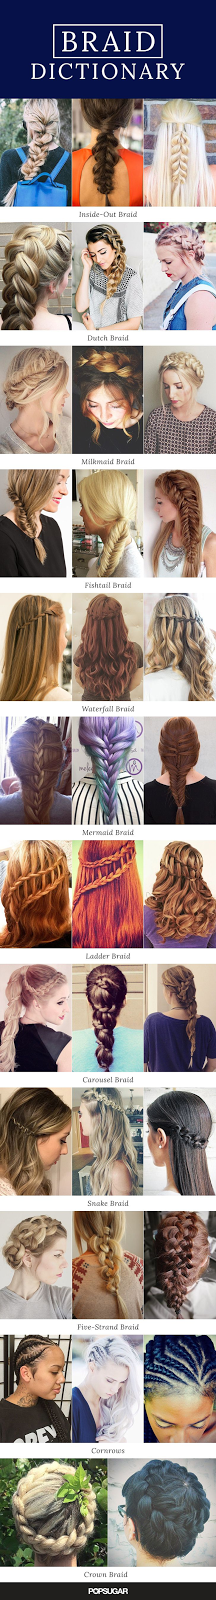 Most Popular Hairstyle Trends